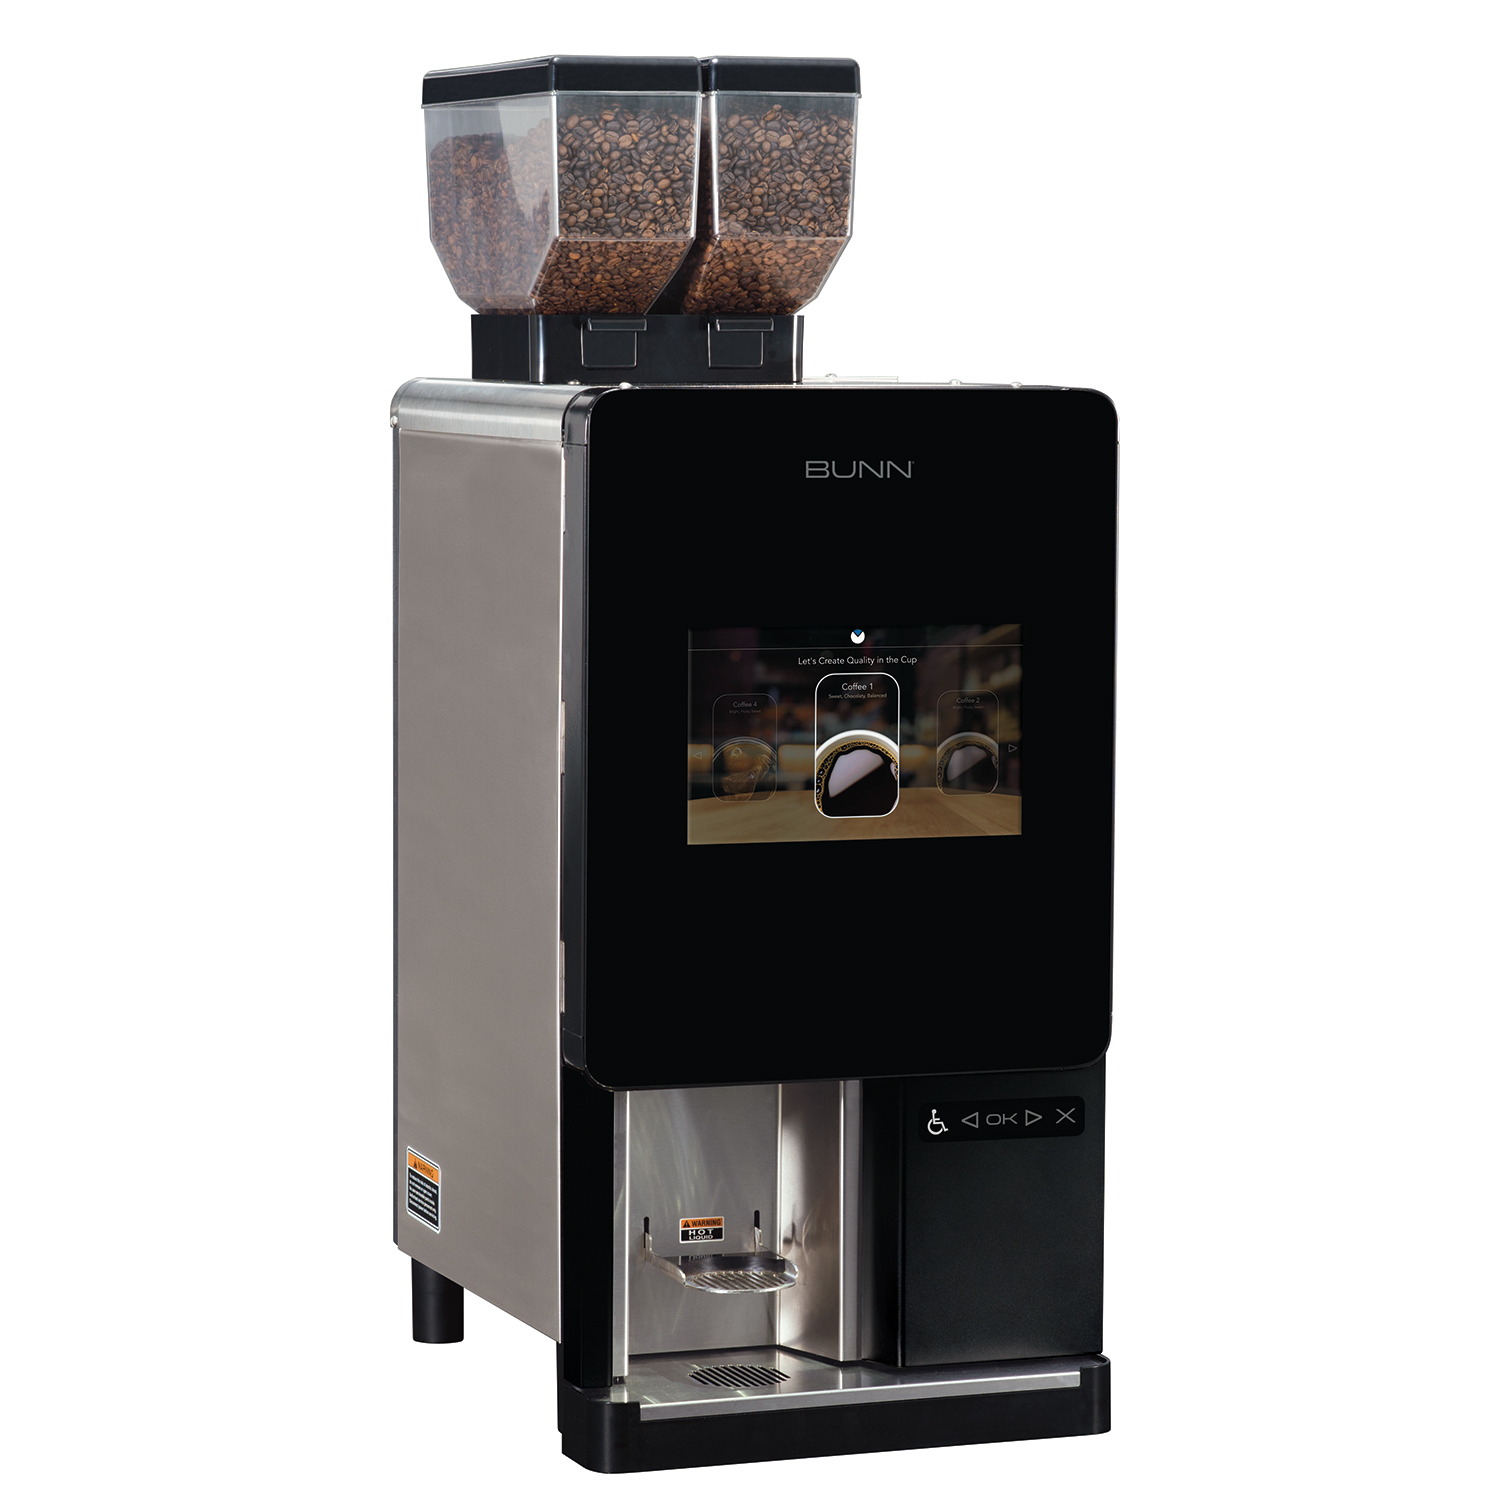 BUNN 44400.0104 coffee brewer, for single cup